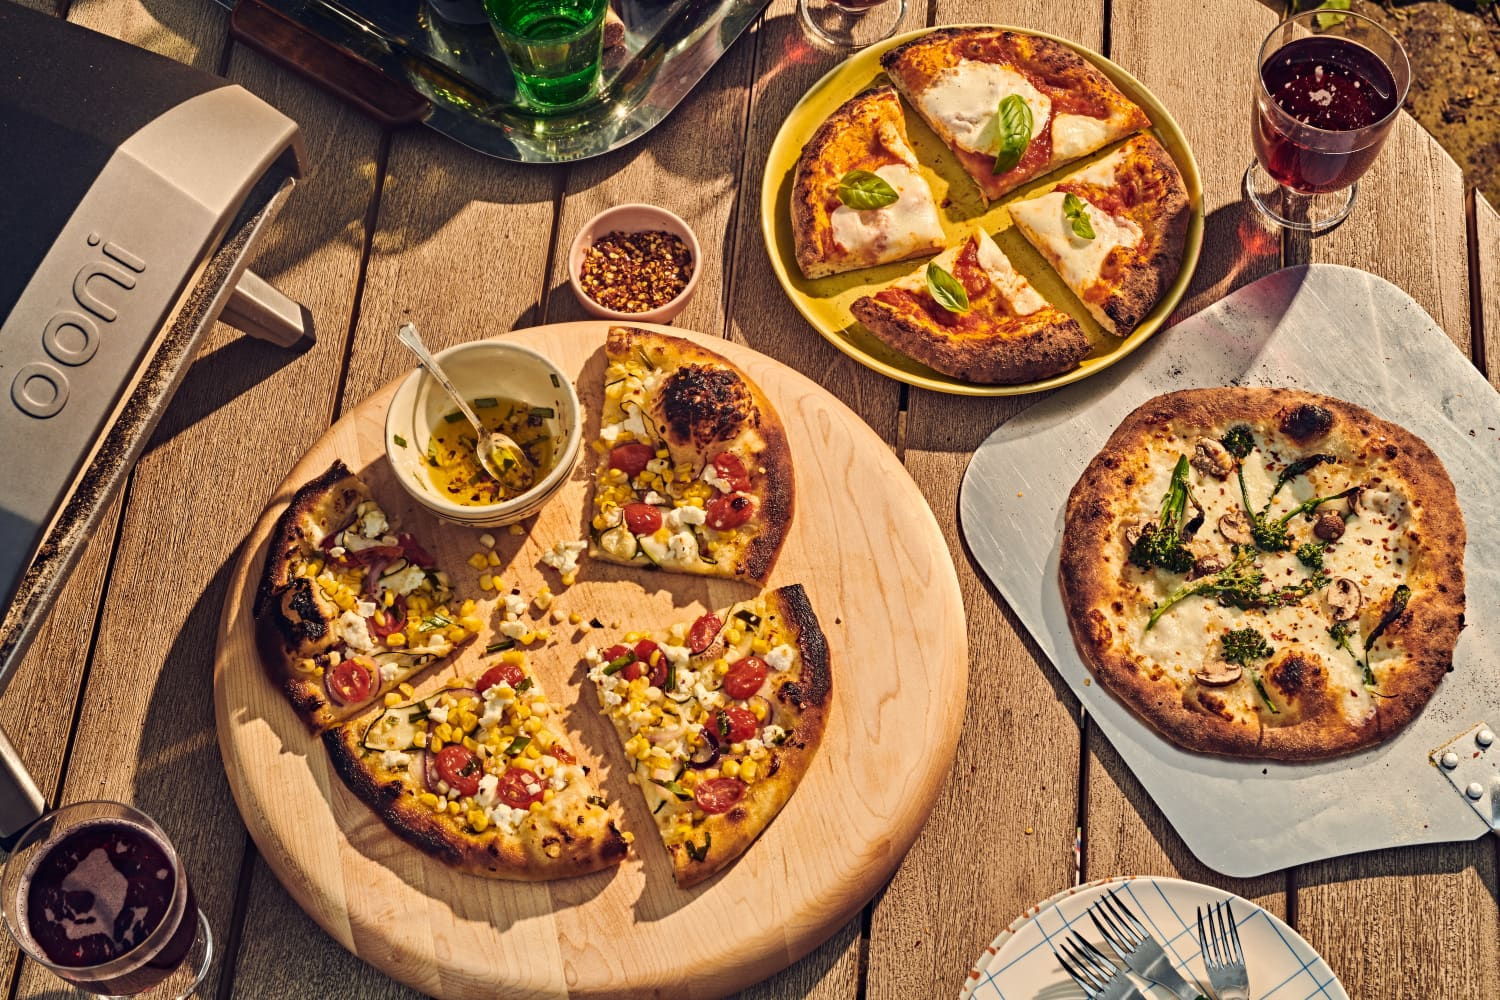 The Outdoor Pizza Oven Is the Pandemic Food Trend That Just Won't Quit (and We're Here for It)